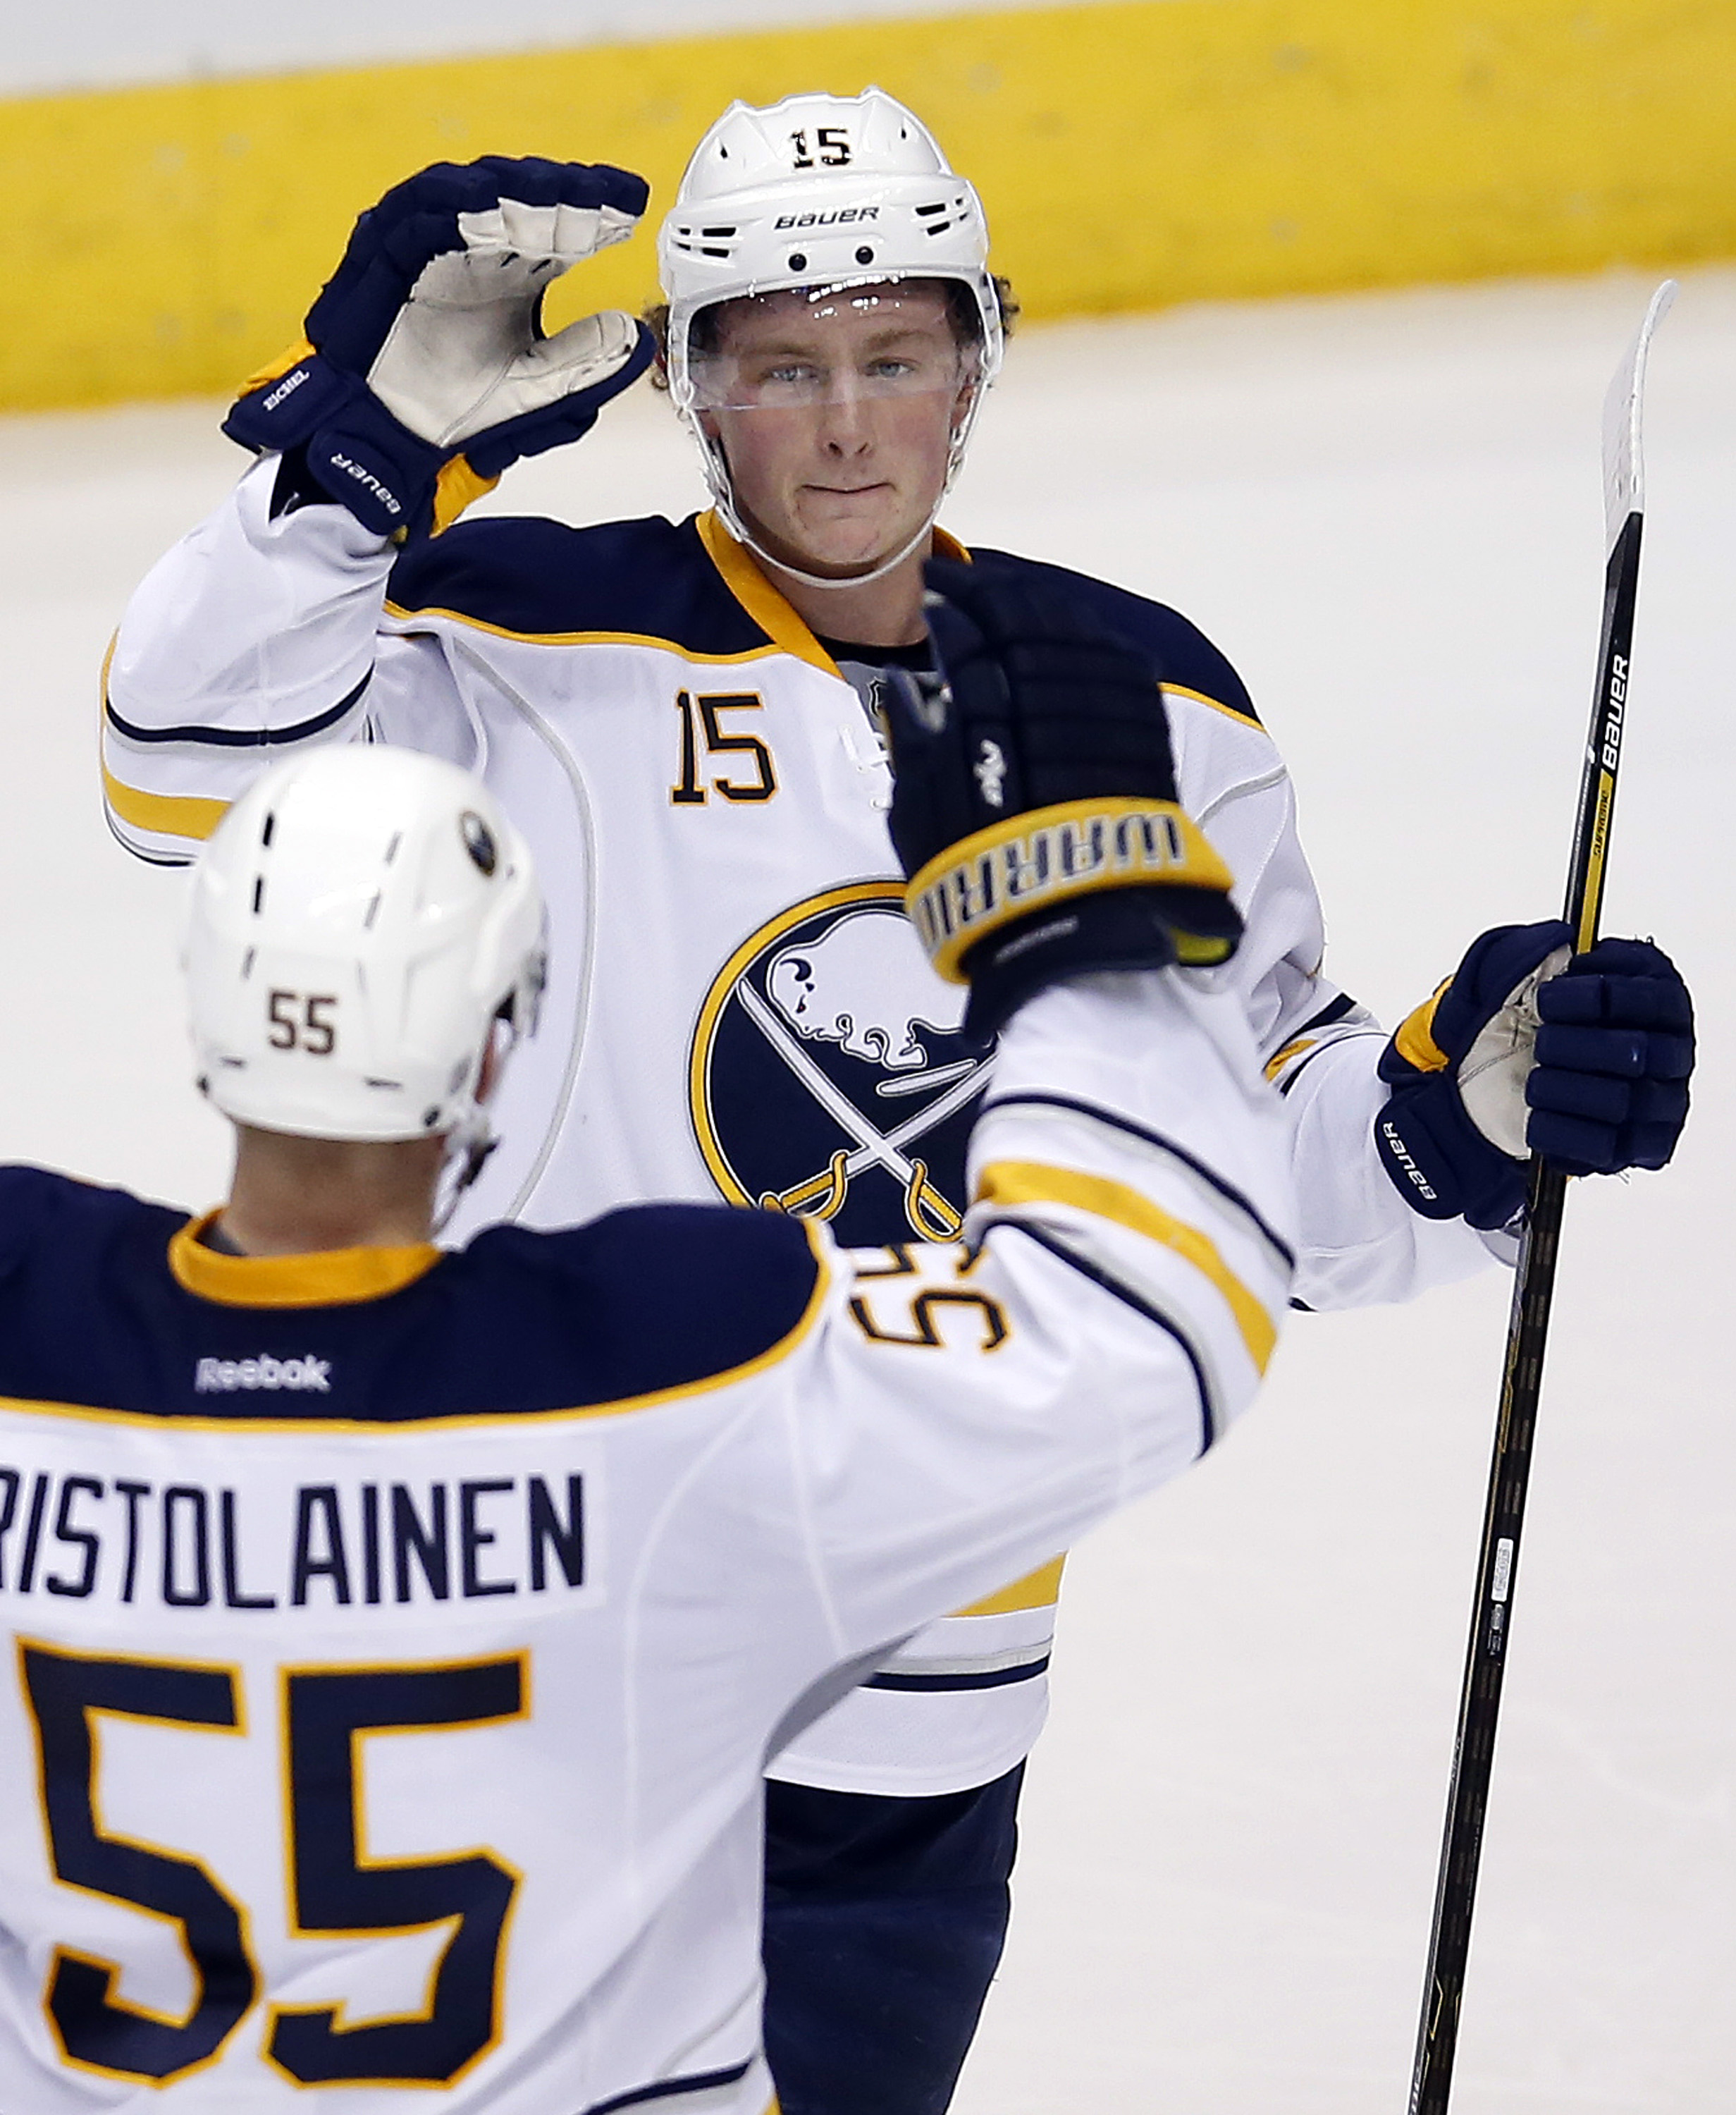 Buffalo Sabres center Jack Eichel (15) celebrates with Rasmus Ristolainen (55) after scoring a goal in the second period during an NHL hockey game against the Arizona Coyotes, Monday, Jan. 18, 2016, in Glendale, Ariz. (AP Photo/Rick Scuteri)